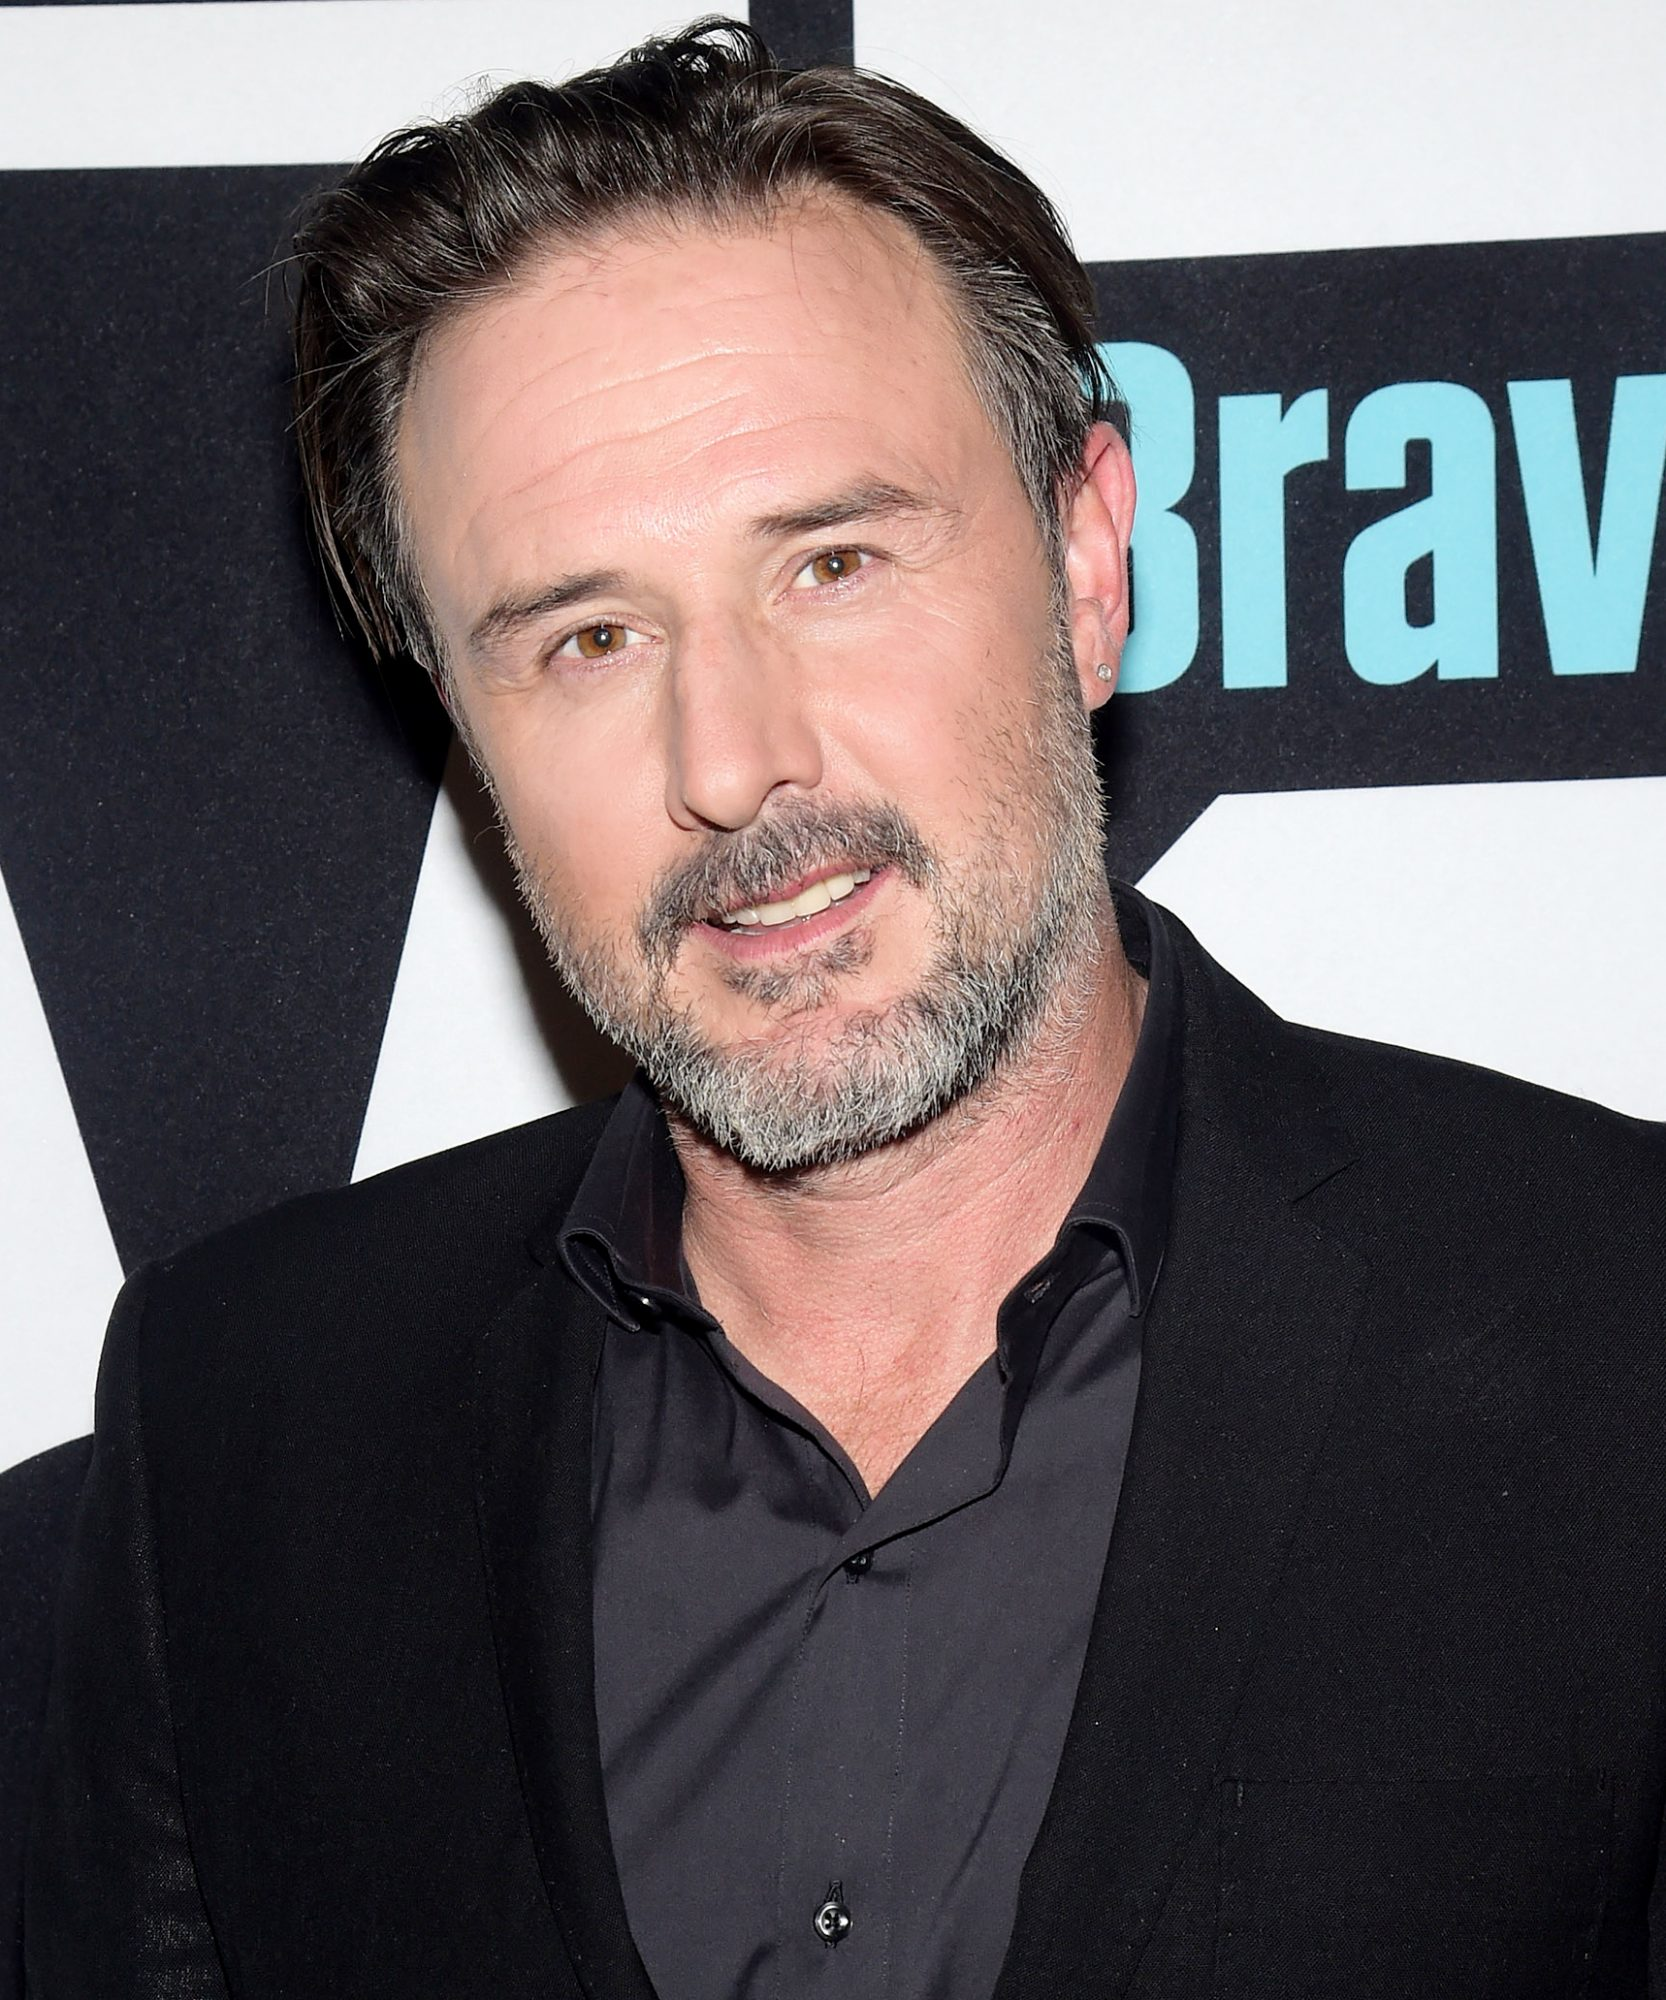 Answer: David Arquette